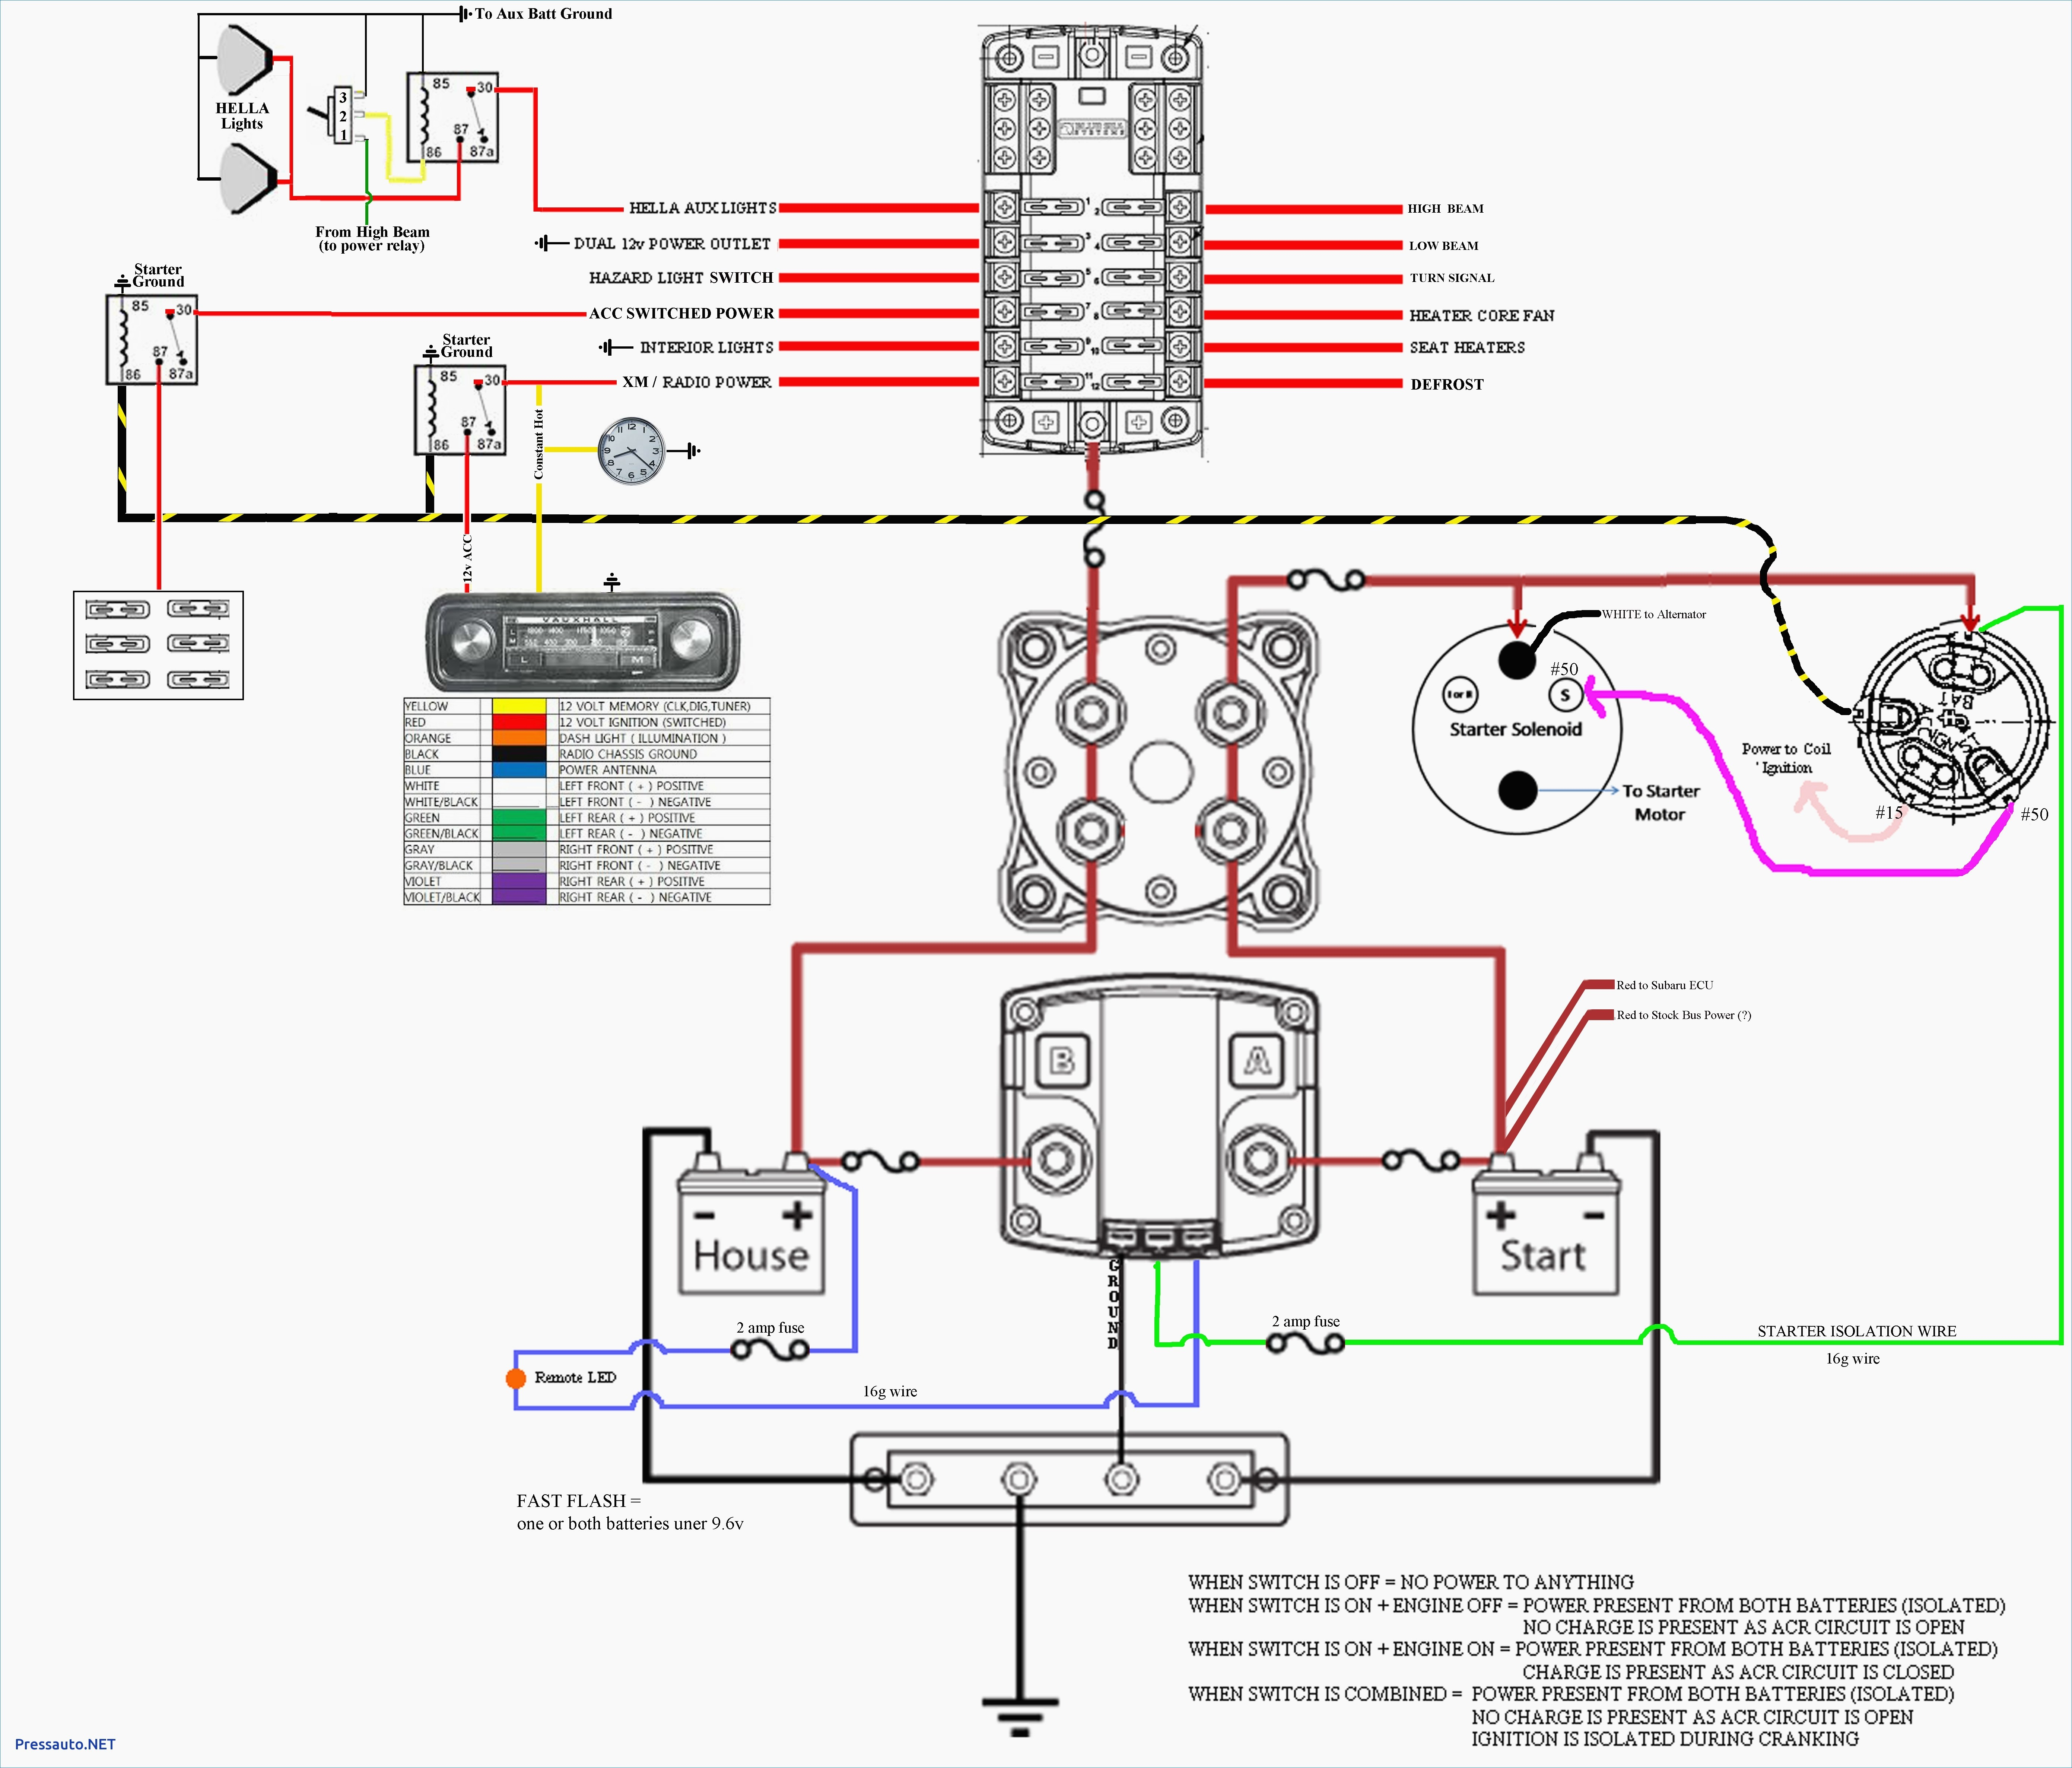 Bargman Breakaway Switch Wiring Diagram Break Away Systems Wiring Diagram Trailer Breakaway Switch Wiring Of Bargman Breakaway Switch Wiring Diagram together with Caliper Parts Diagram Nouveau Brakes Going To The Floor Ideas Blog Of Caliper Parts Diagram likewise Wiring Diagram For Voltage Regulator Of Alternator Voltage Regulator Wiring Diagram in addition Alternator moreover Generator Voltage Regulator Wiring Diagram Alternator Schematic Of Kubota Rectifier Wiring Diagram. on battery voltage regulator ford expedition